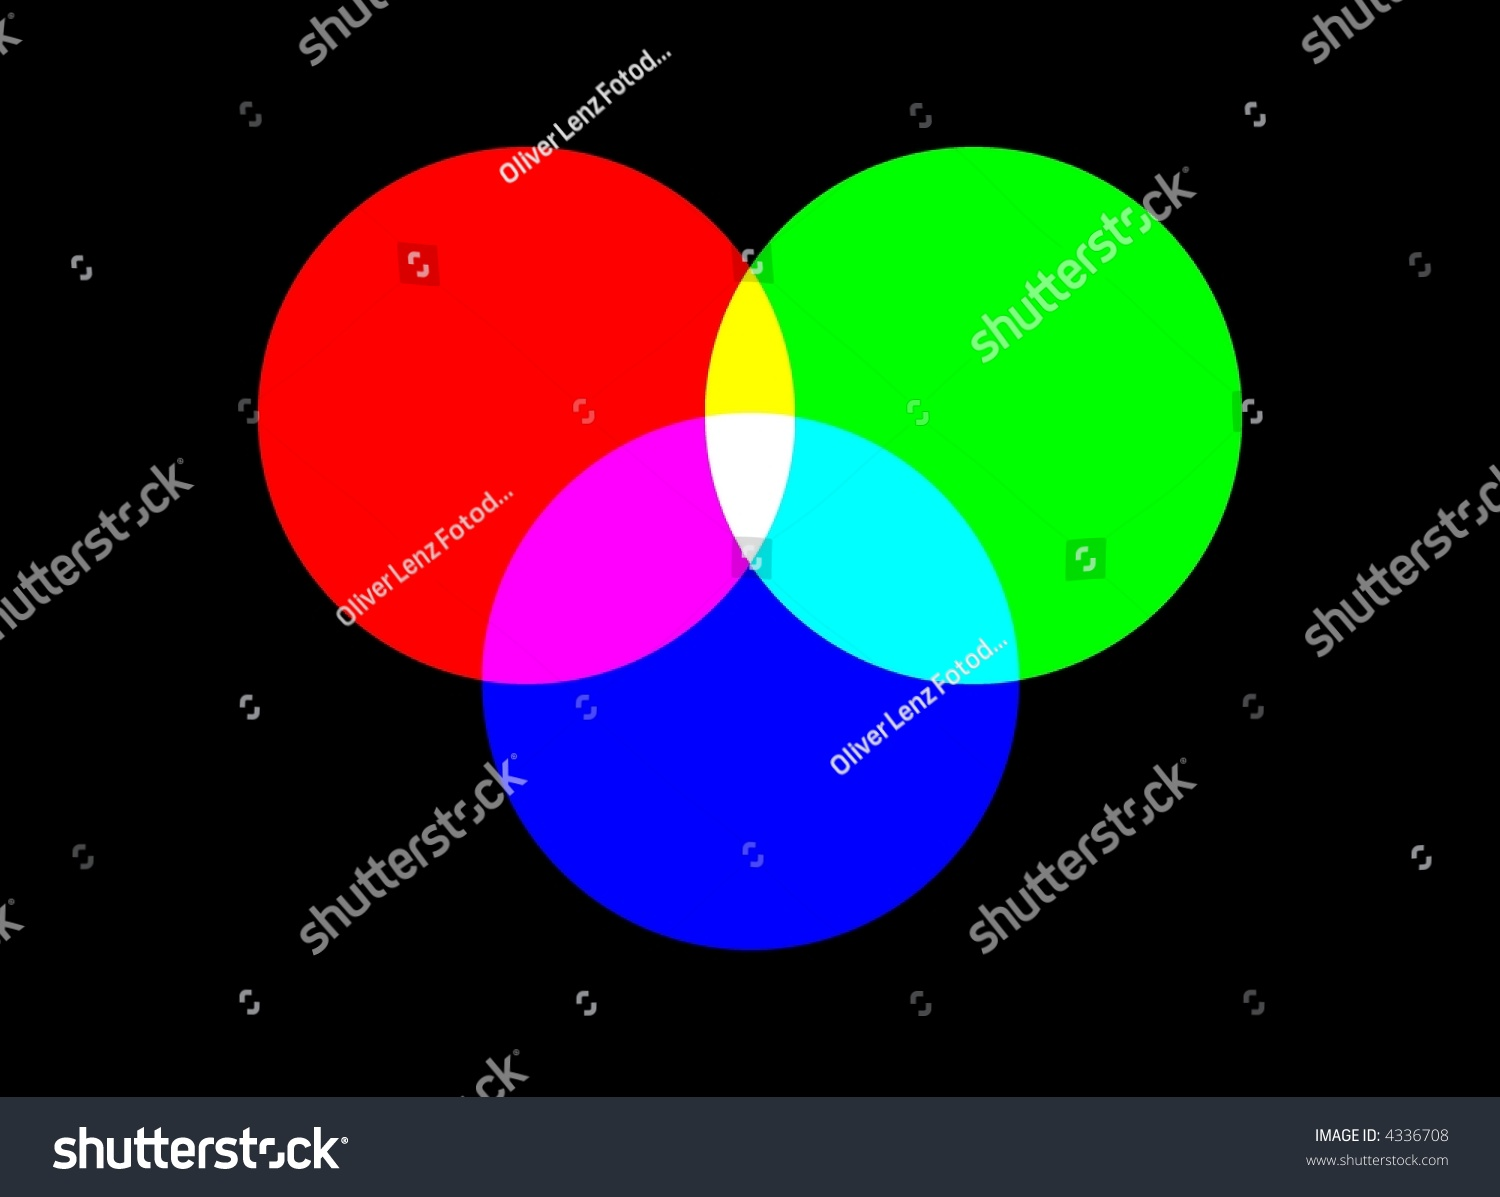 Rgb color chart stock illustration 4336708 shutterstock rgb color chart geenschuldenfo Image collections